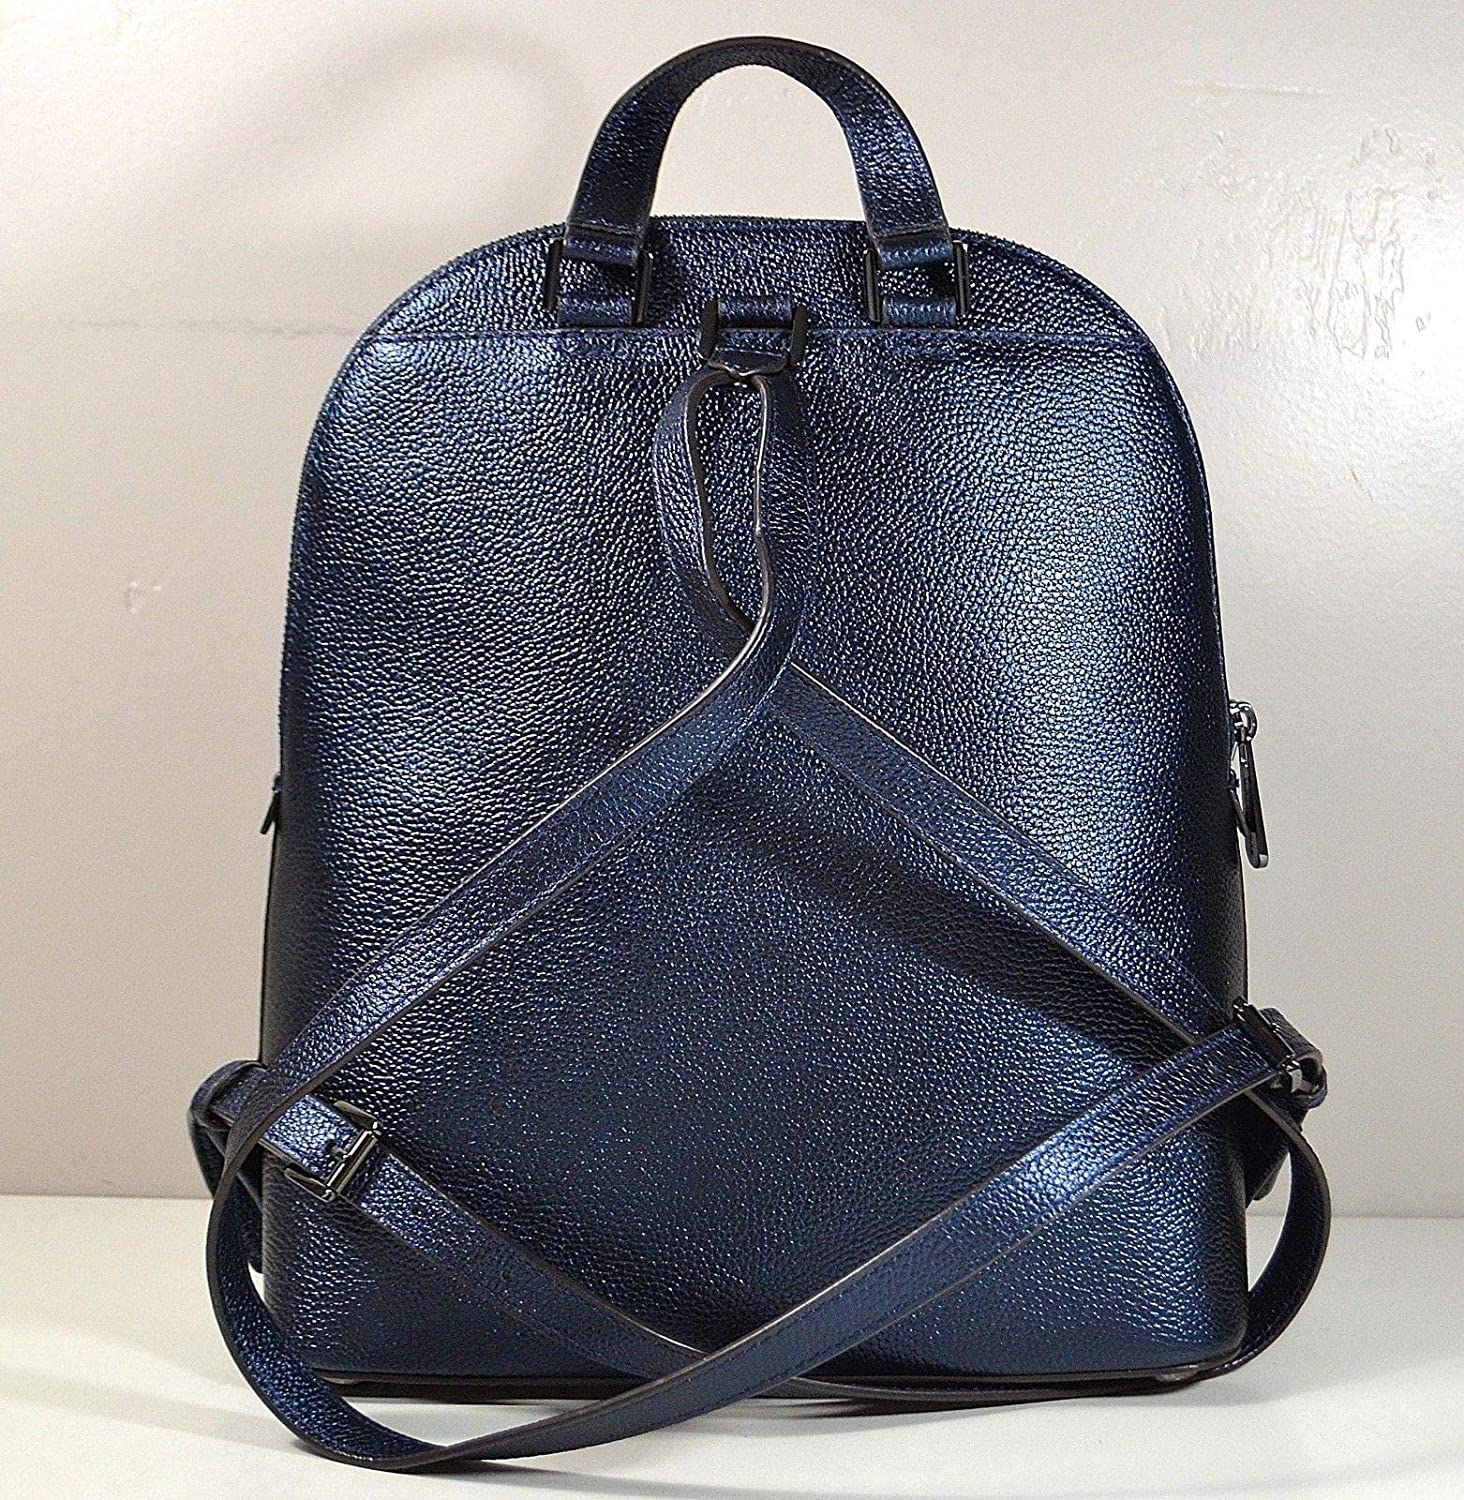 51c81cc7ab5bdc ... greece amazon michael kors adele large leather backpack in midnight  shoes 87350 facd4